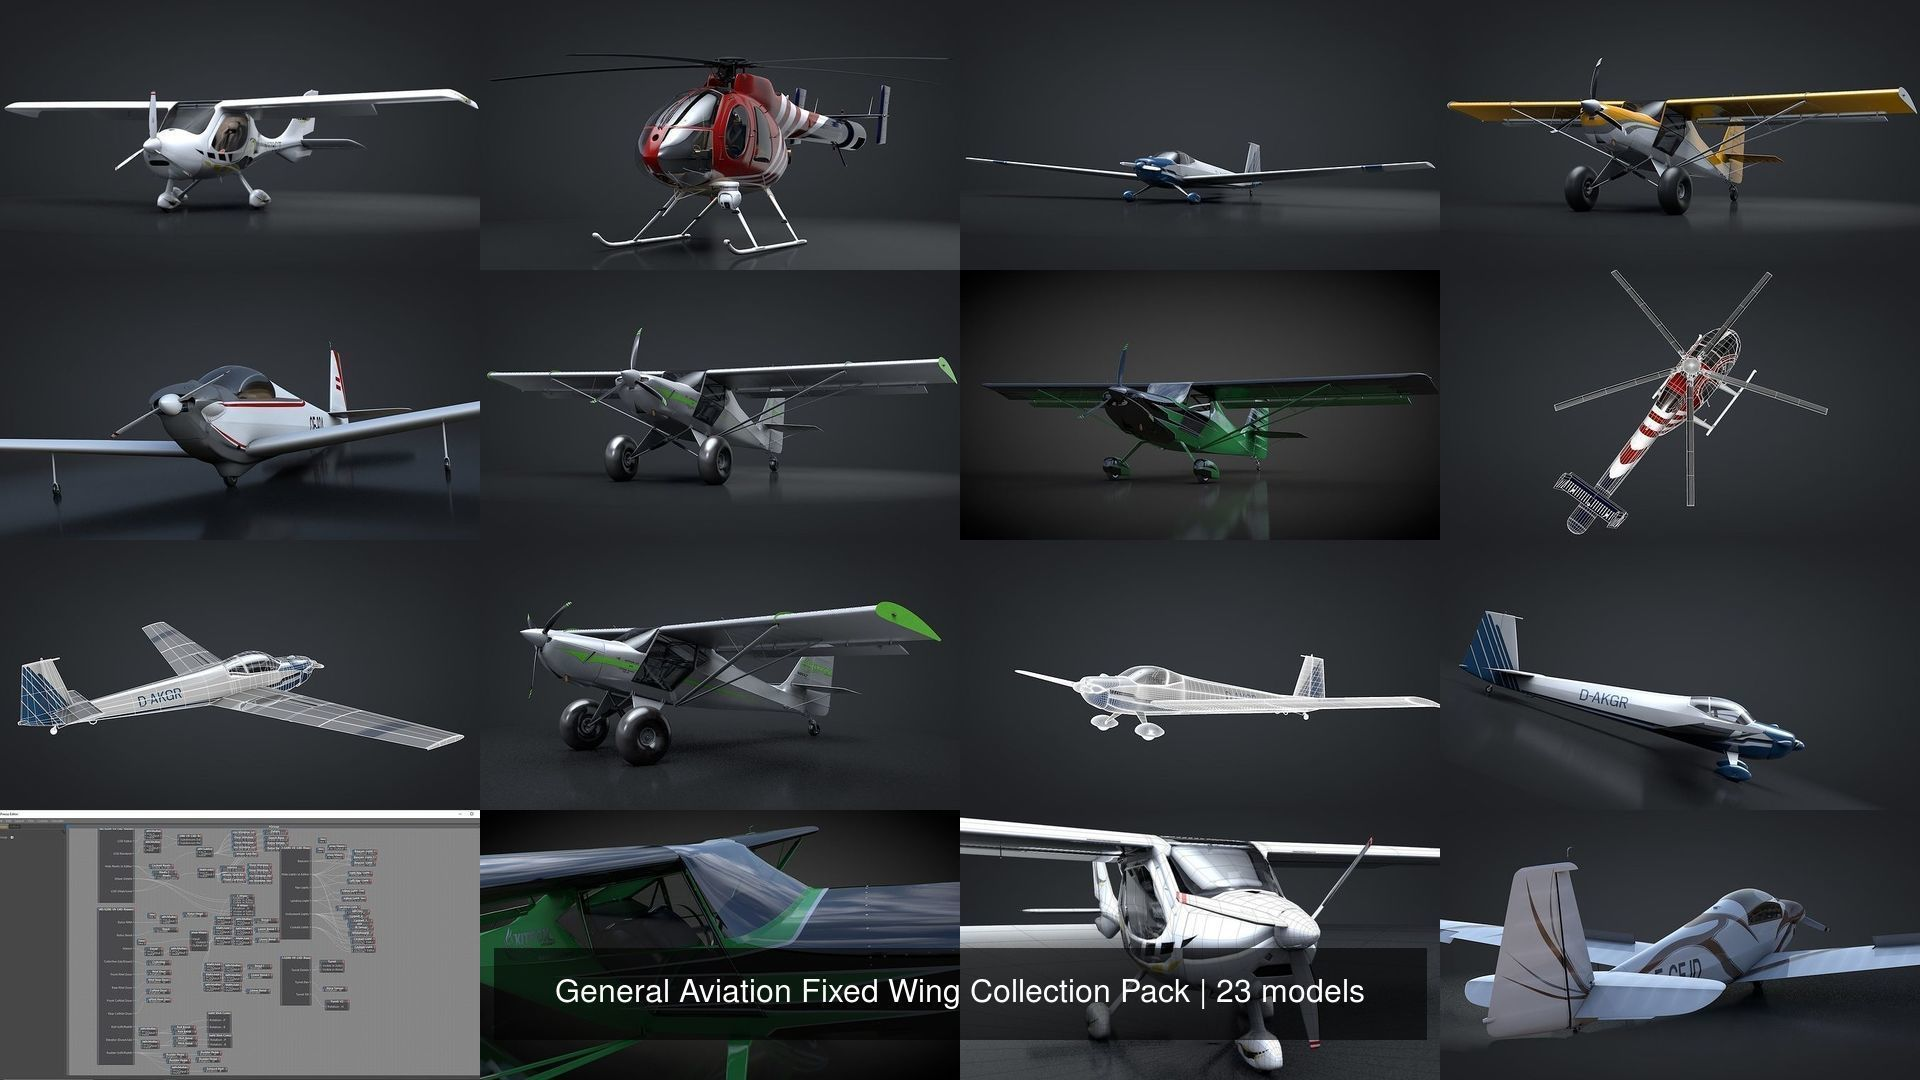 General Aviation Fixed Wing Collection Pack